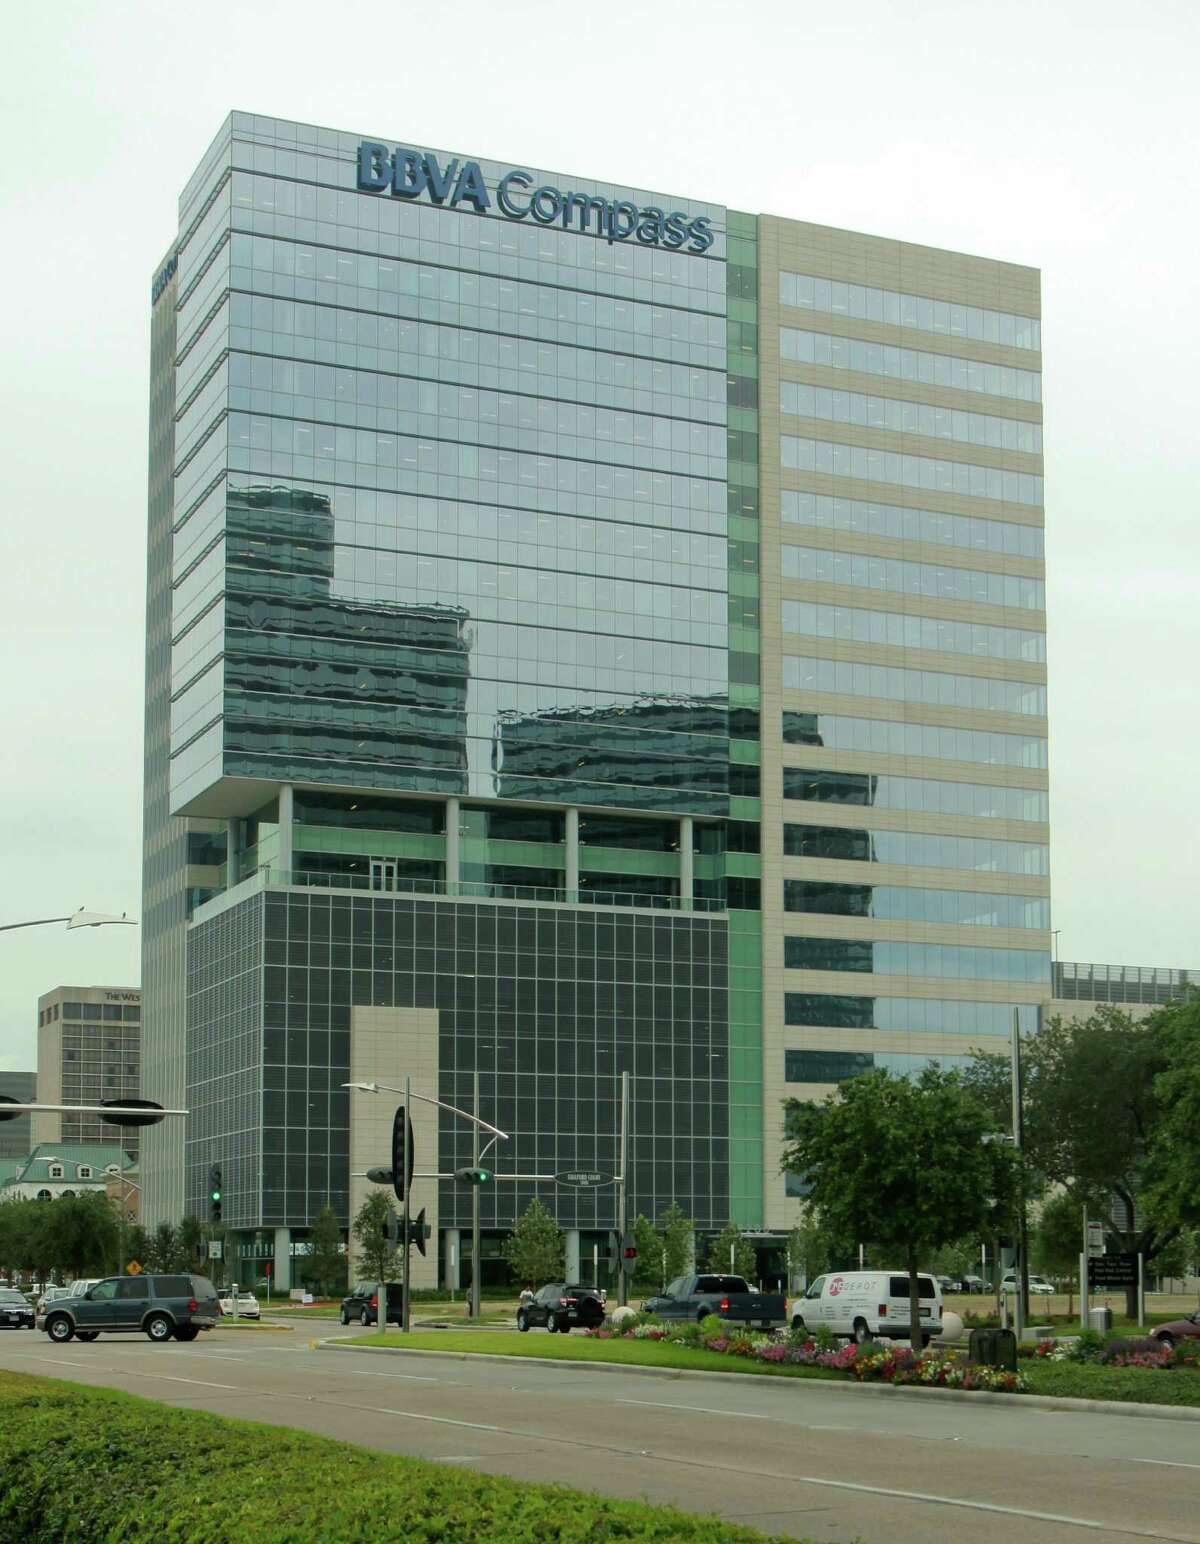 BBVA Compass' office building in the Galleria area. Keep going to see the largest Houston-area banks.